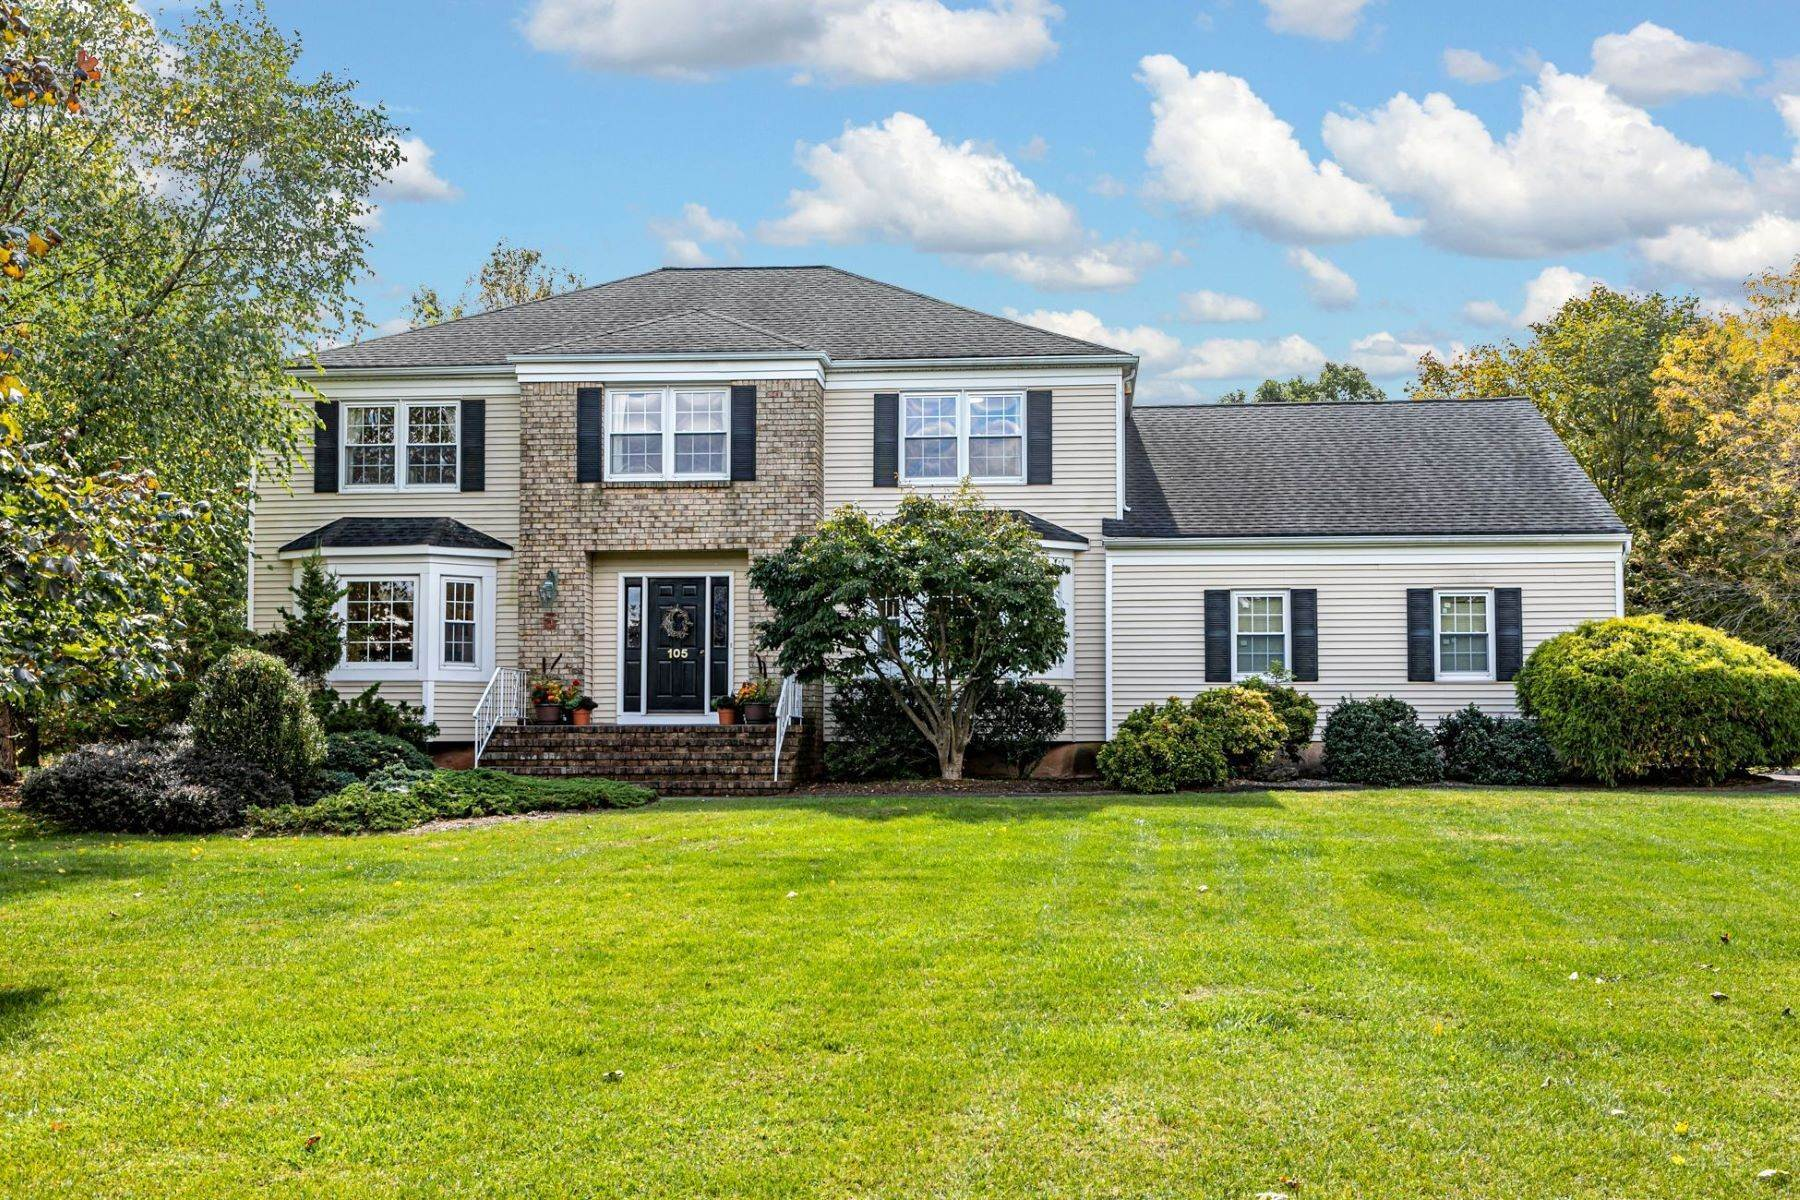 Single Family Homes for Sale at A Timeless Floor Plan In Convenient Belle Mead 105 Berkley Avenue, Belle Mead, New Jersey 08502 United States